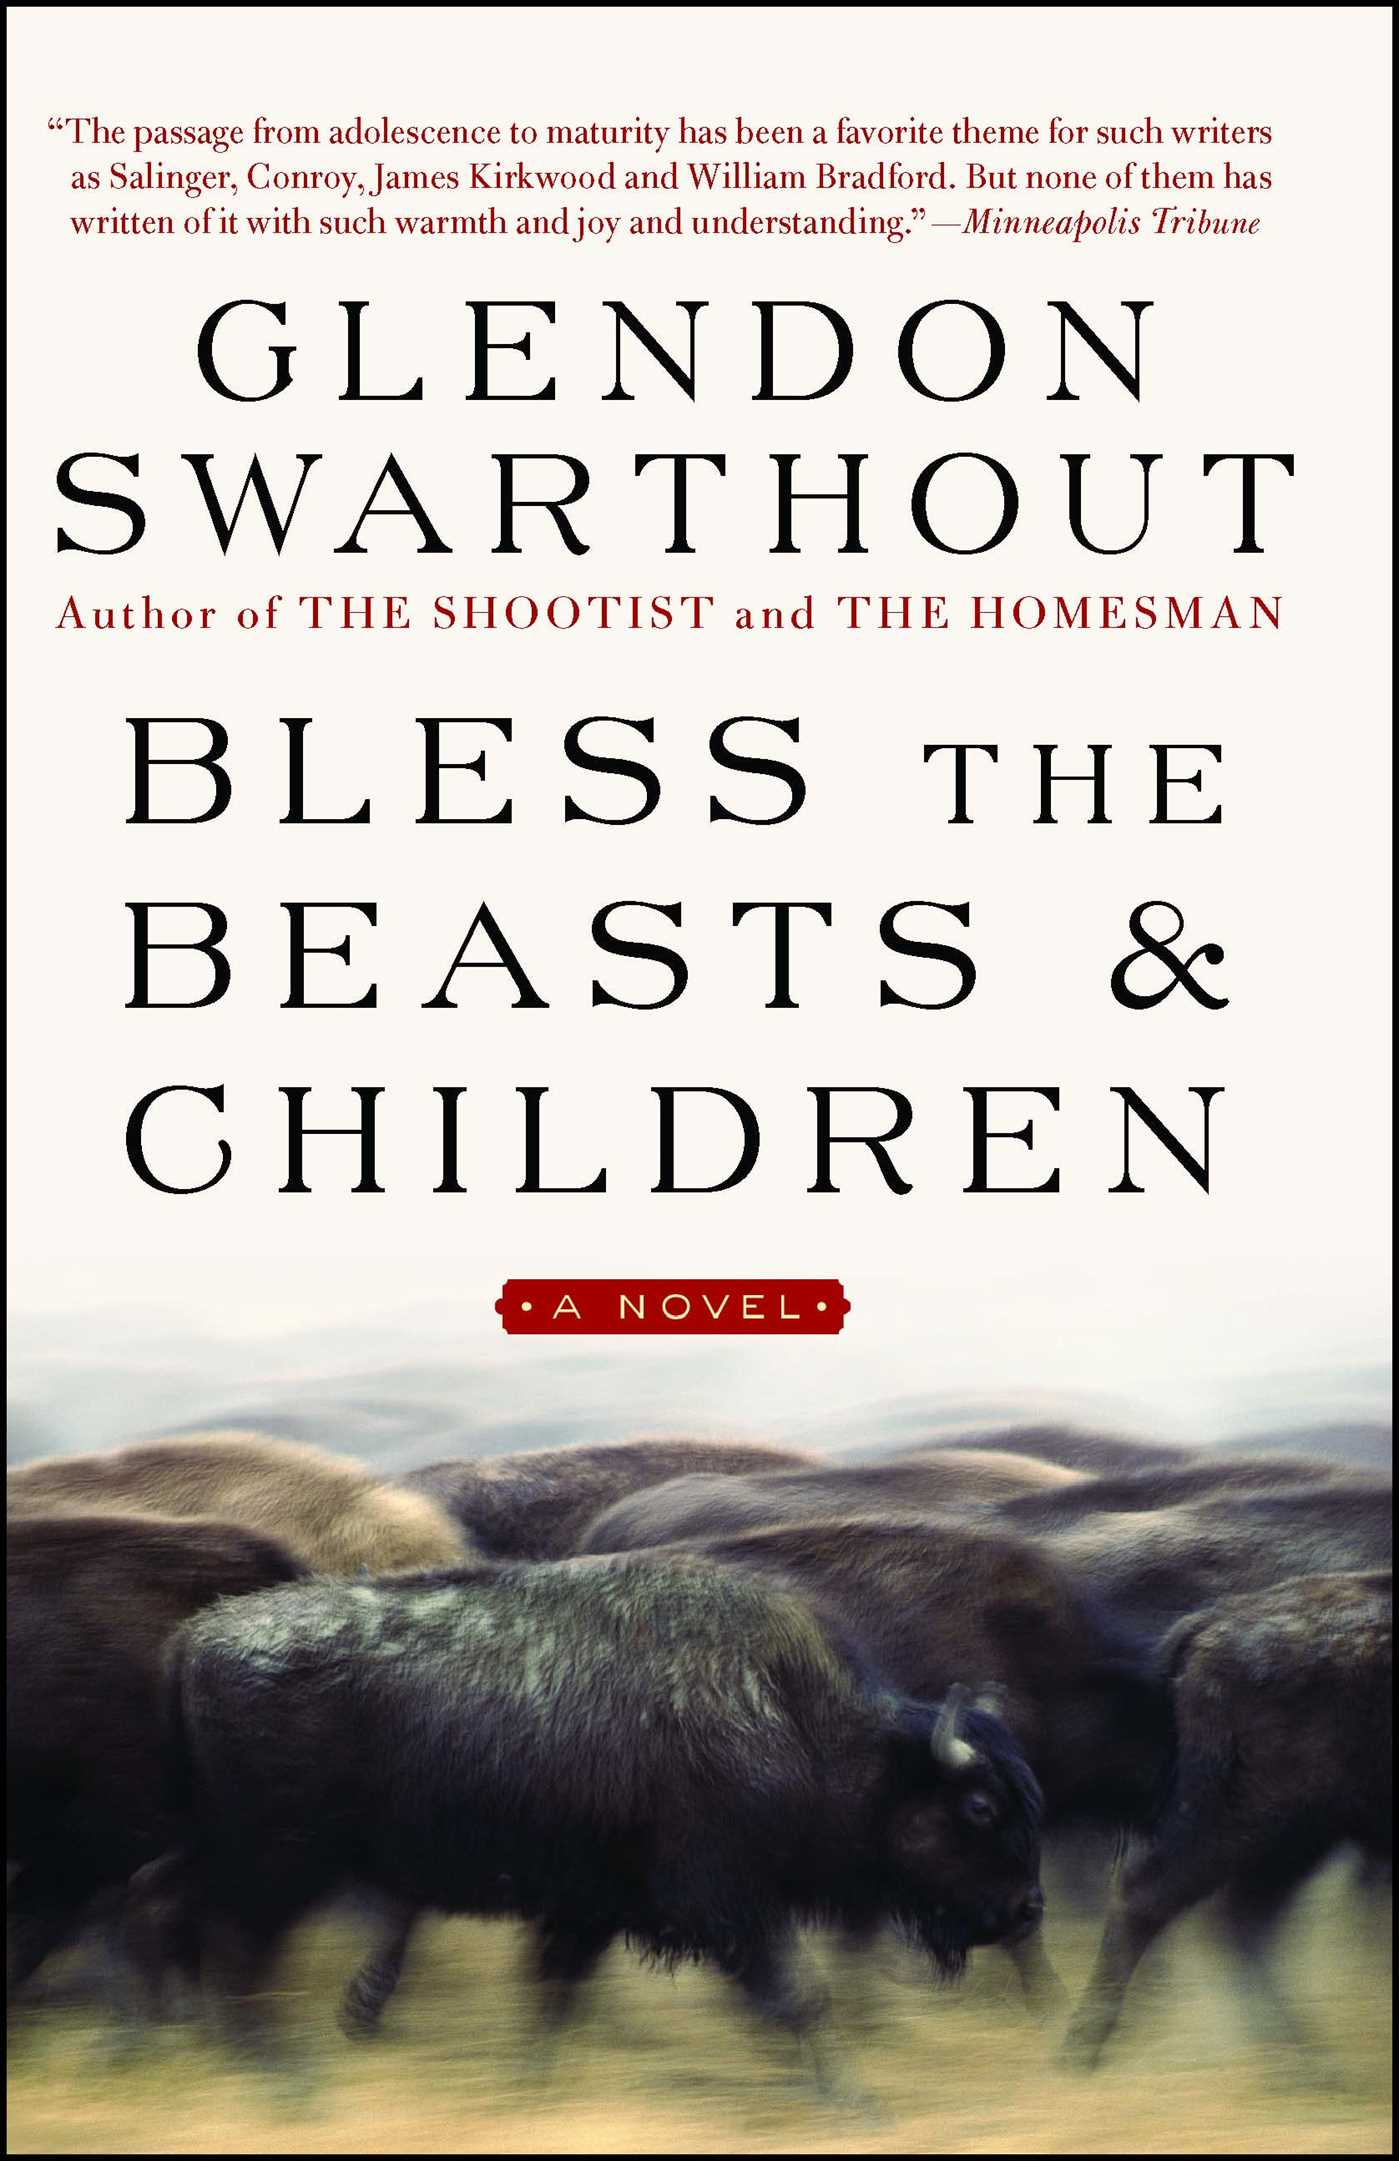 Bless-the-beasts-children-9781476766799_hr